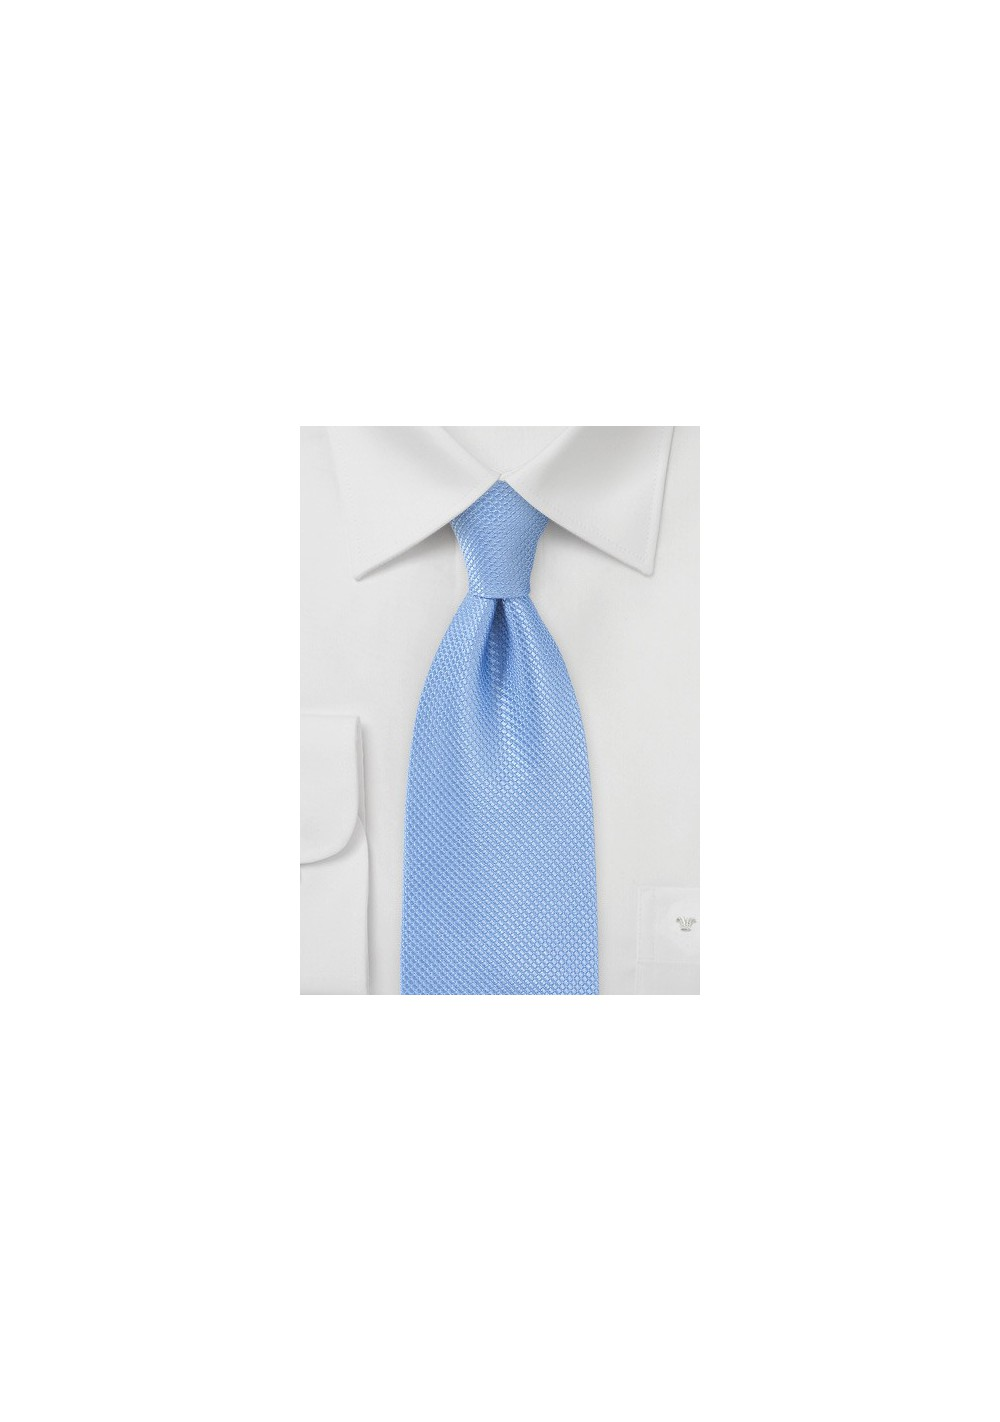 Hydrangea Blue Tie made from Pure Silk